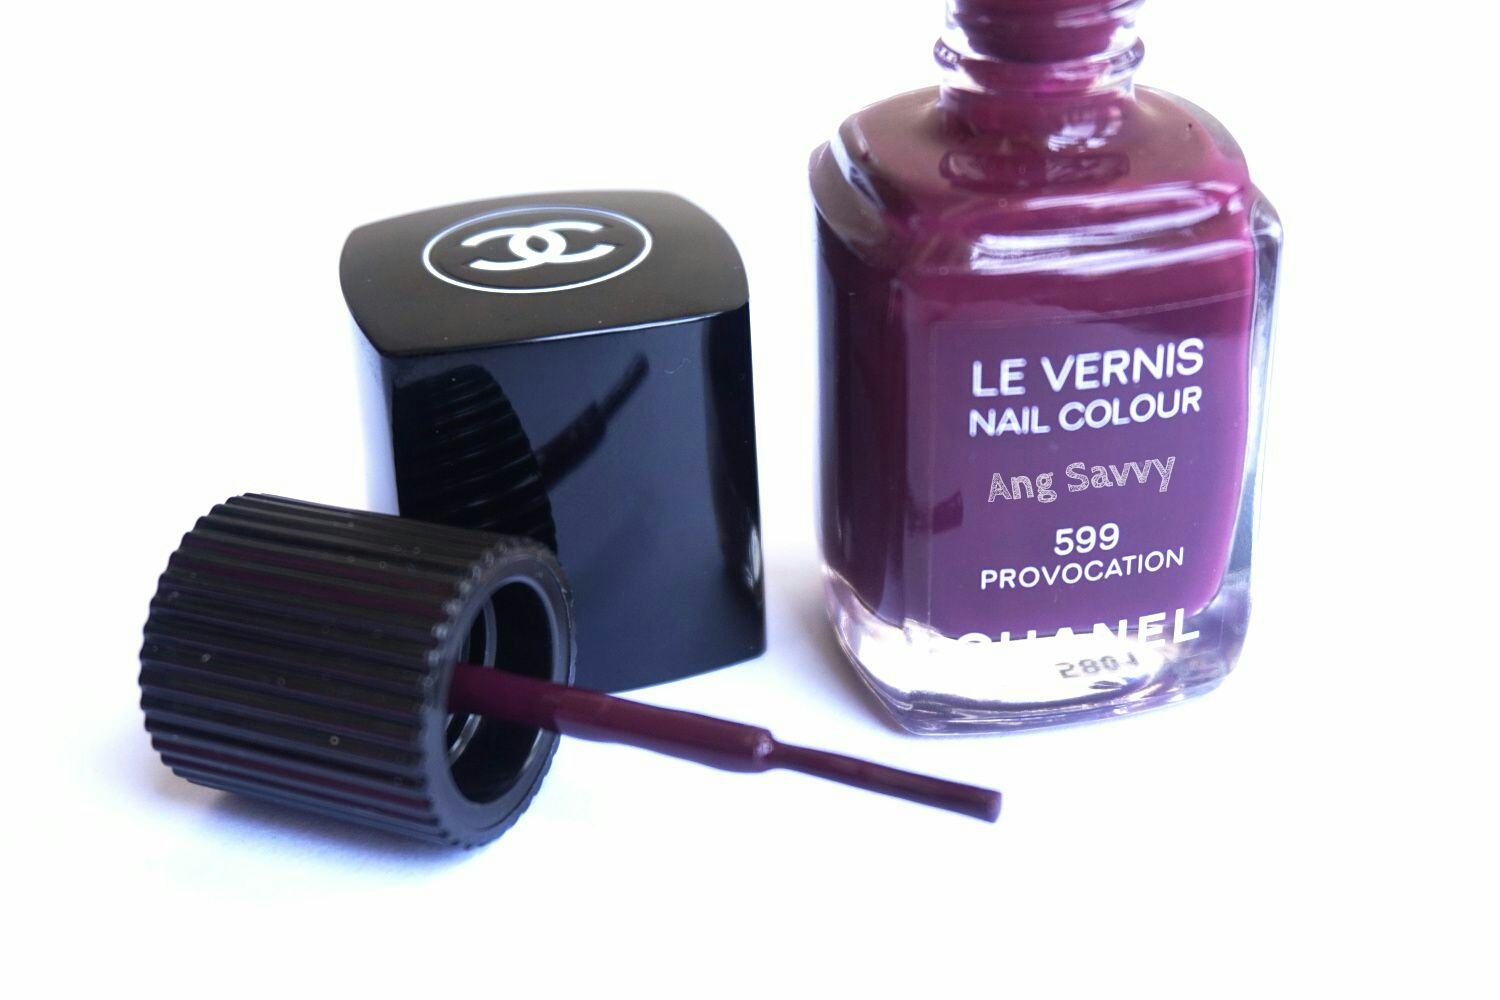 Chanel Le Vernis Nail Colour 599 Provocation